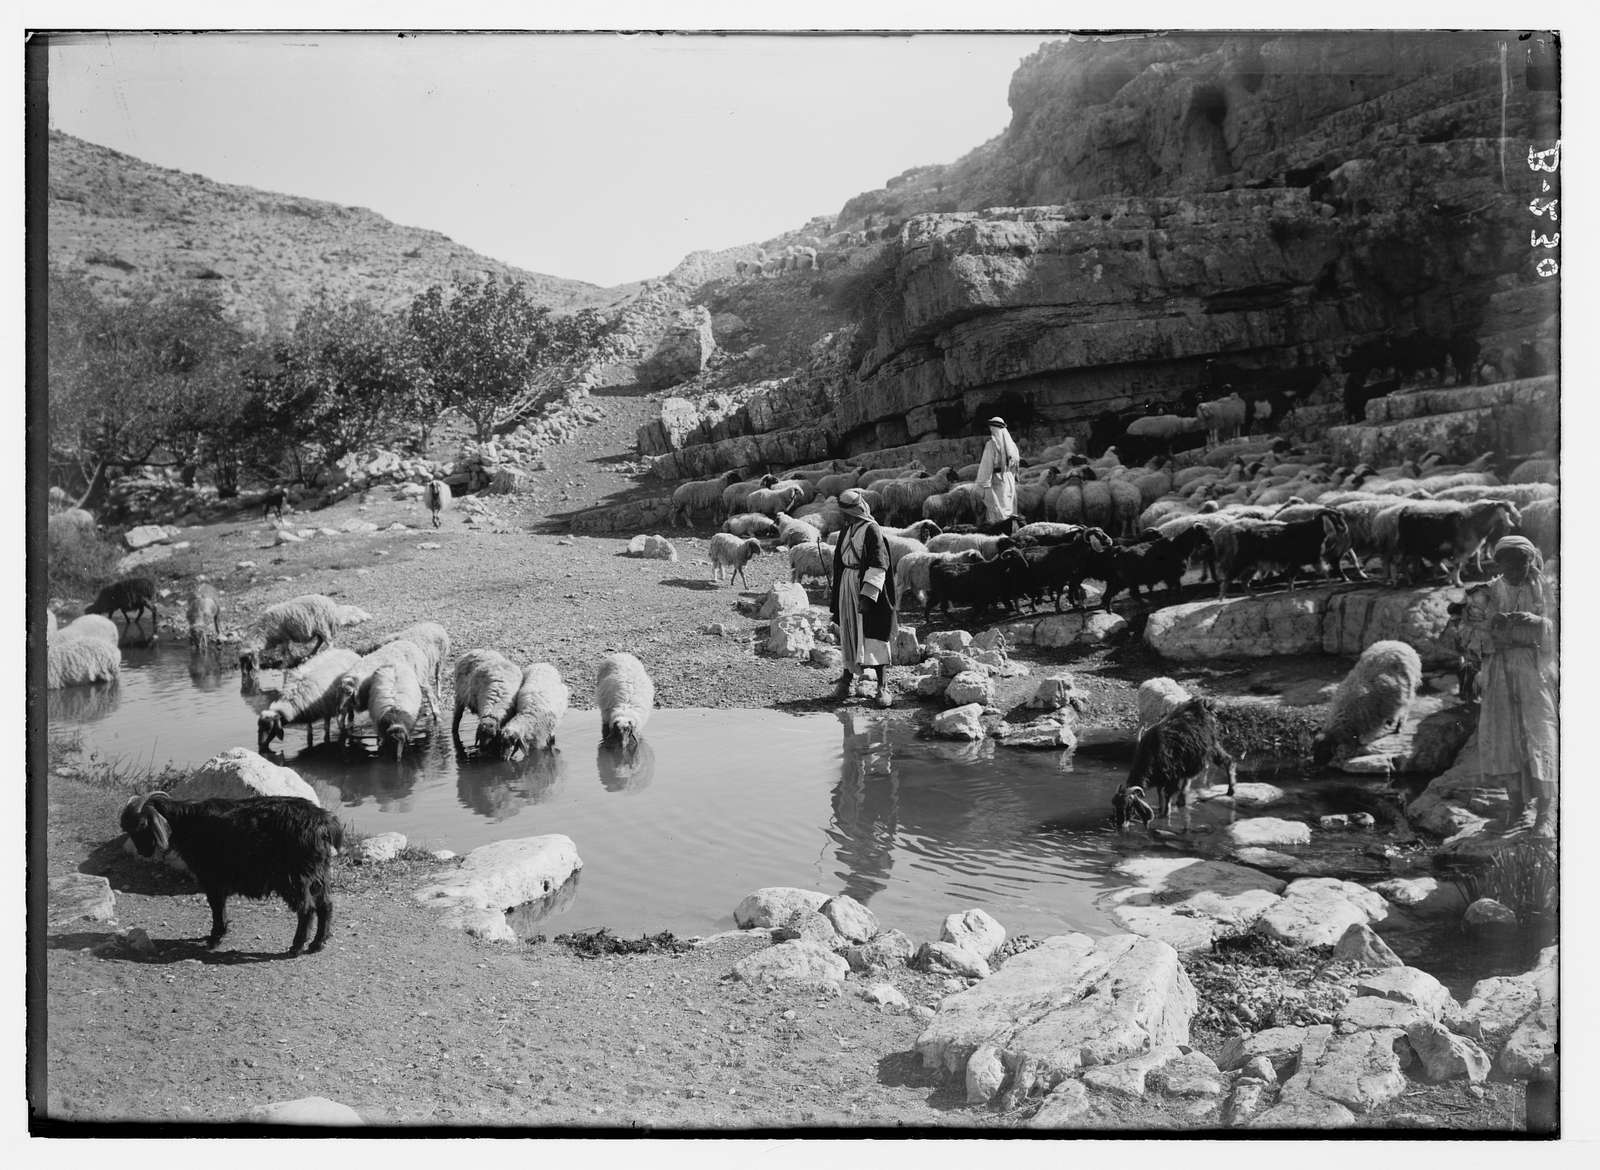 Costumes, characters, etc. Shepherd resting with flock at Ain Farah